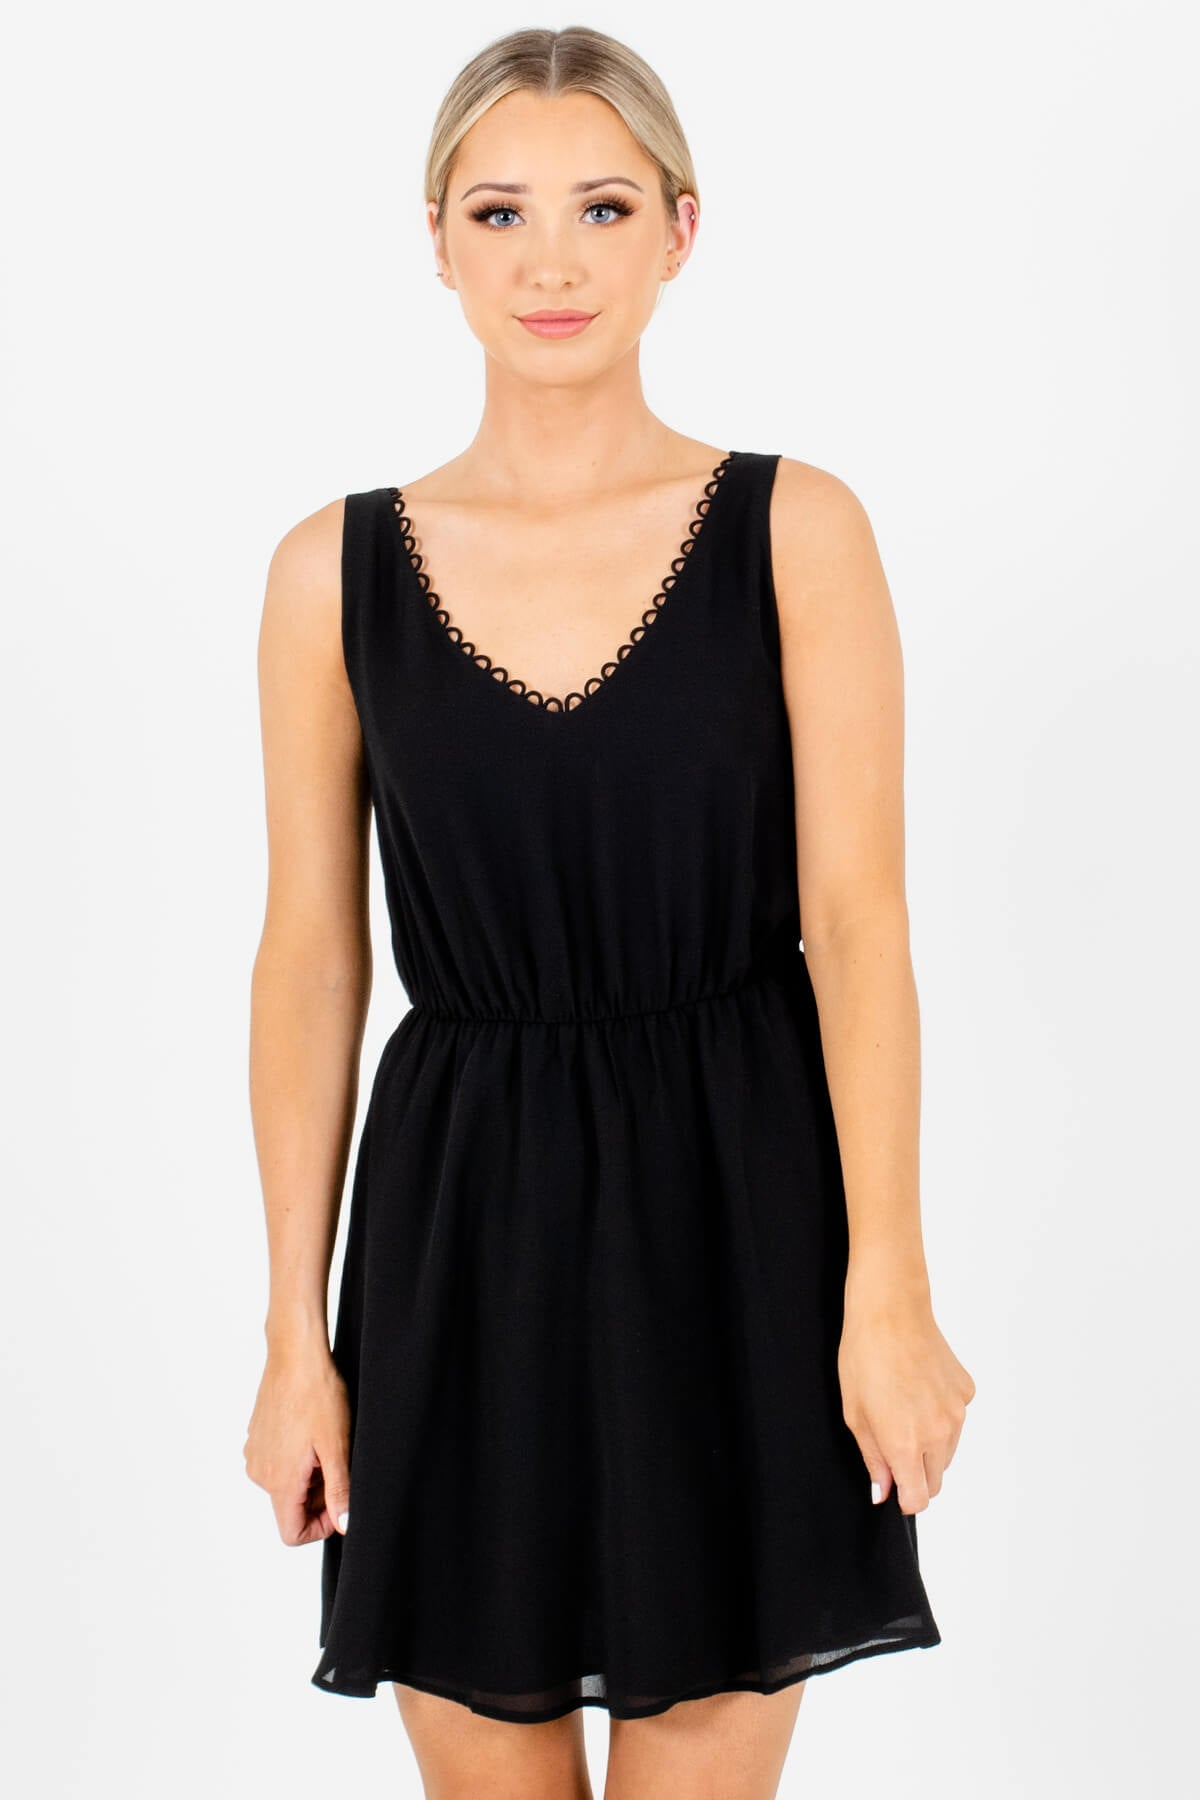 Black Mini Length Boutique Dresses for Women